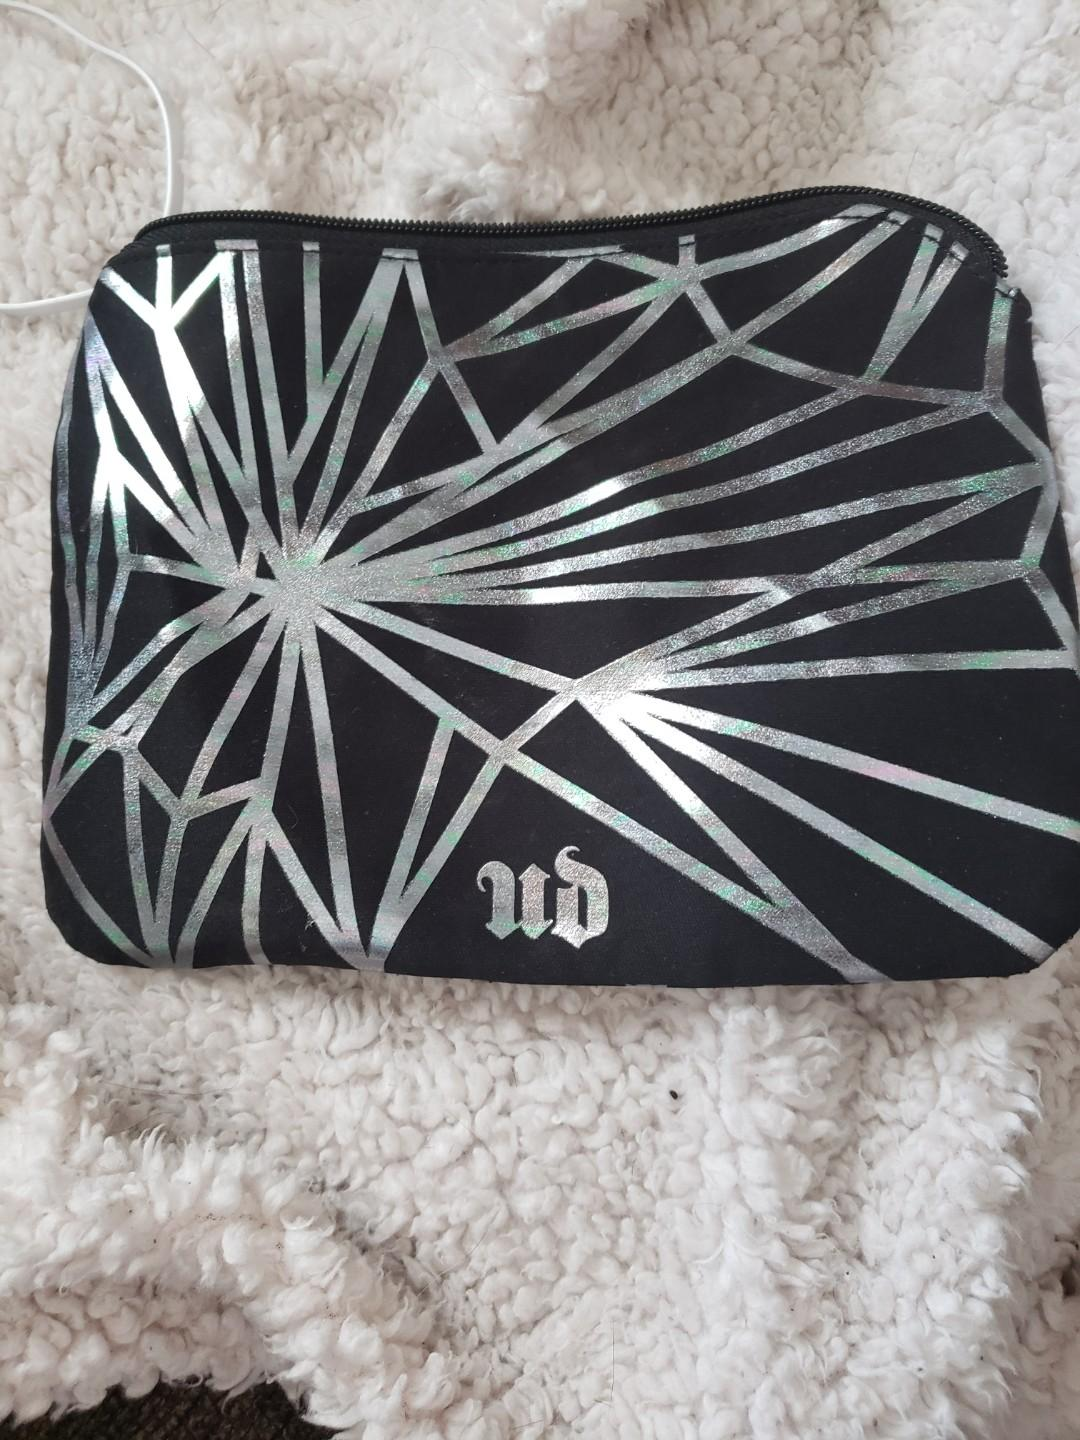 Urban decay vice 4 limited edition palette